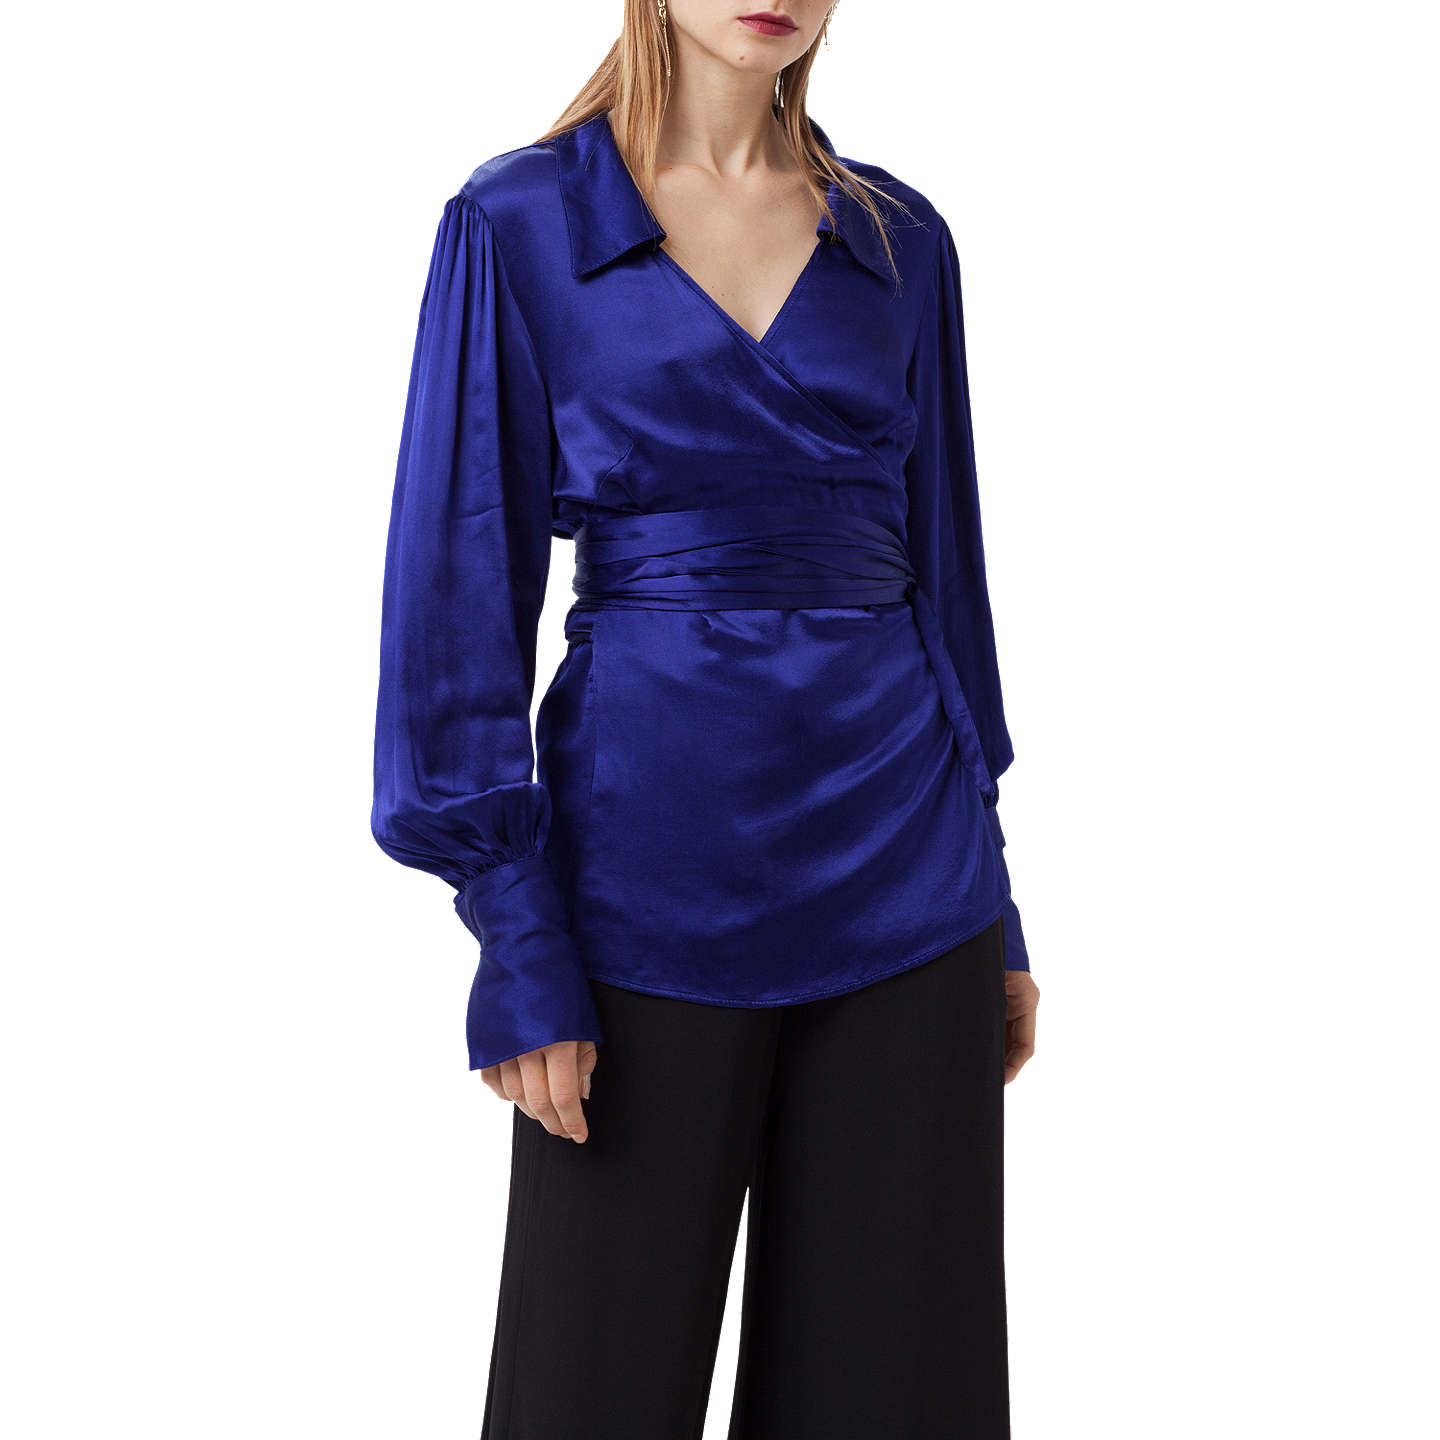 BuyFinery Reeve Satin Wrap Top, Bright Blue, 8 Online At Johnlewis.com ...